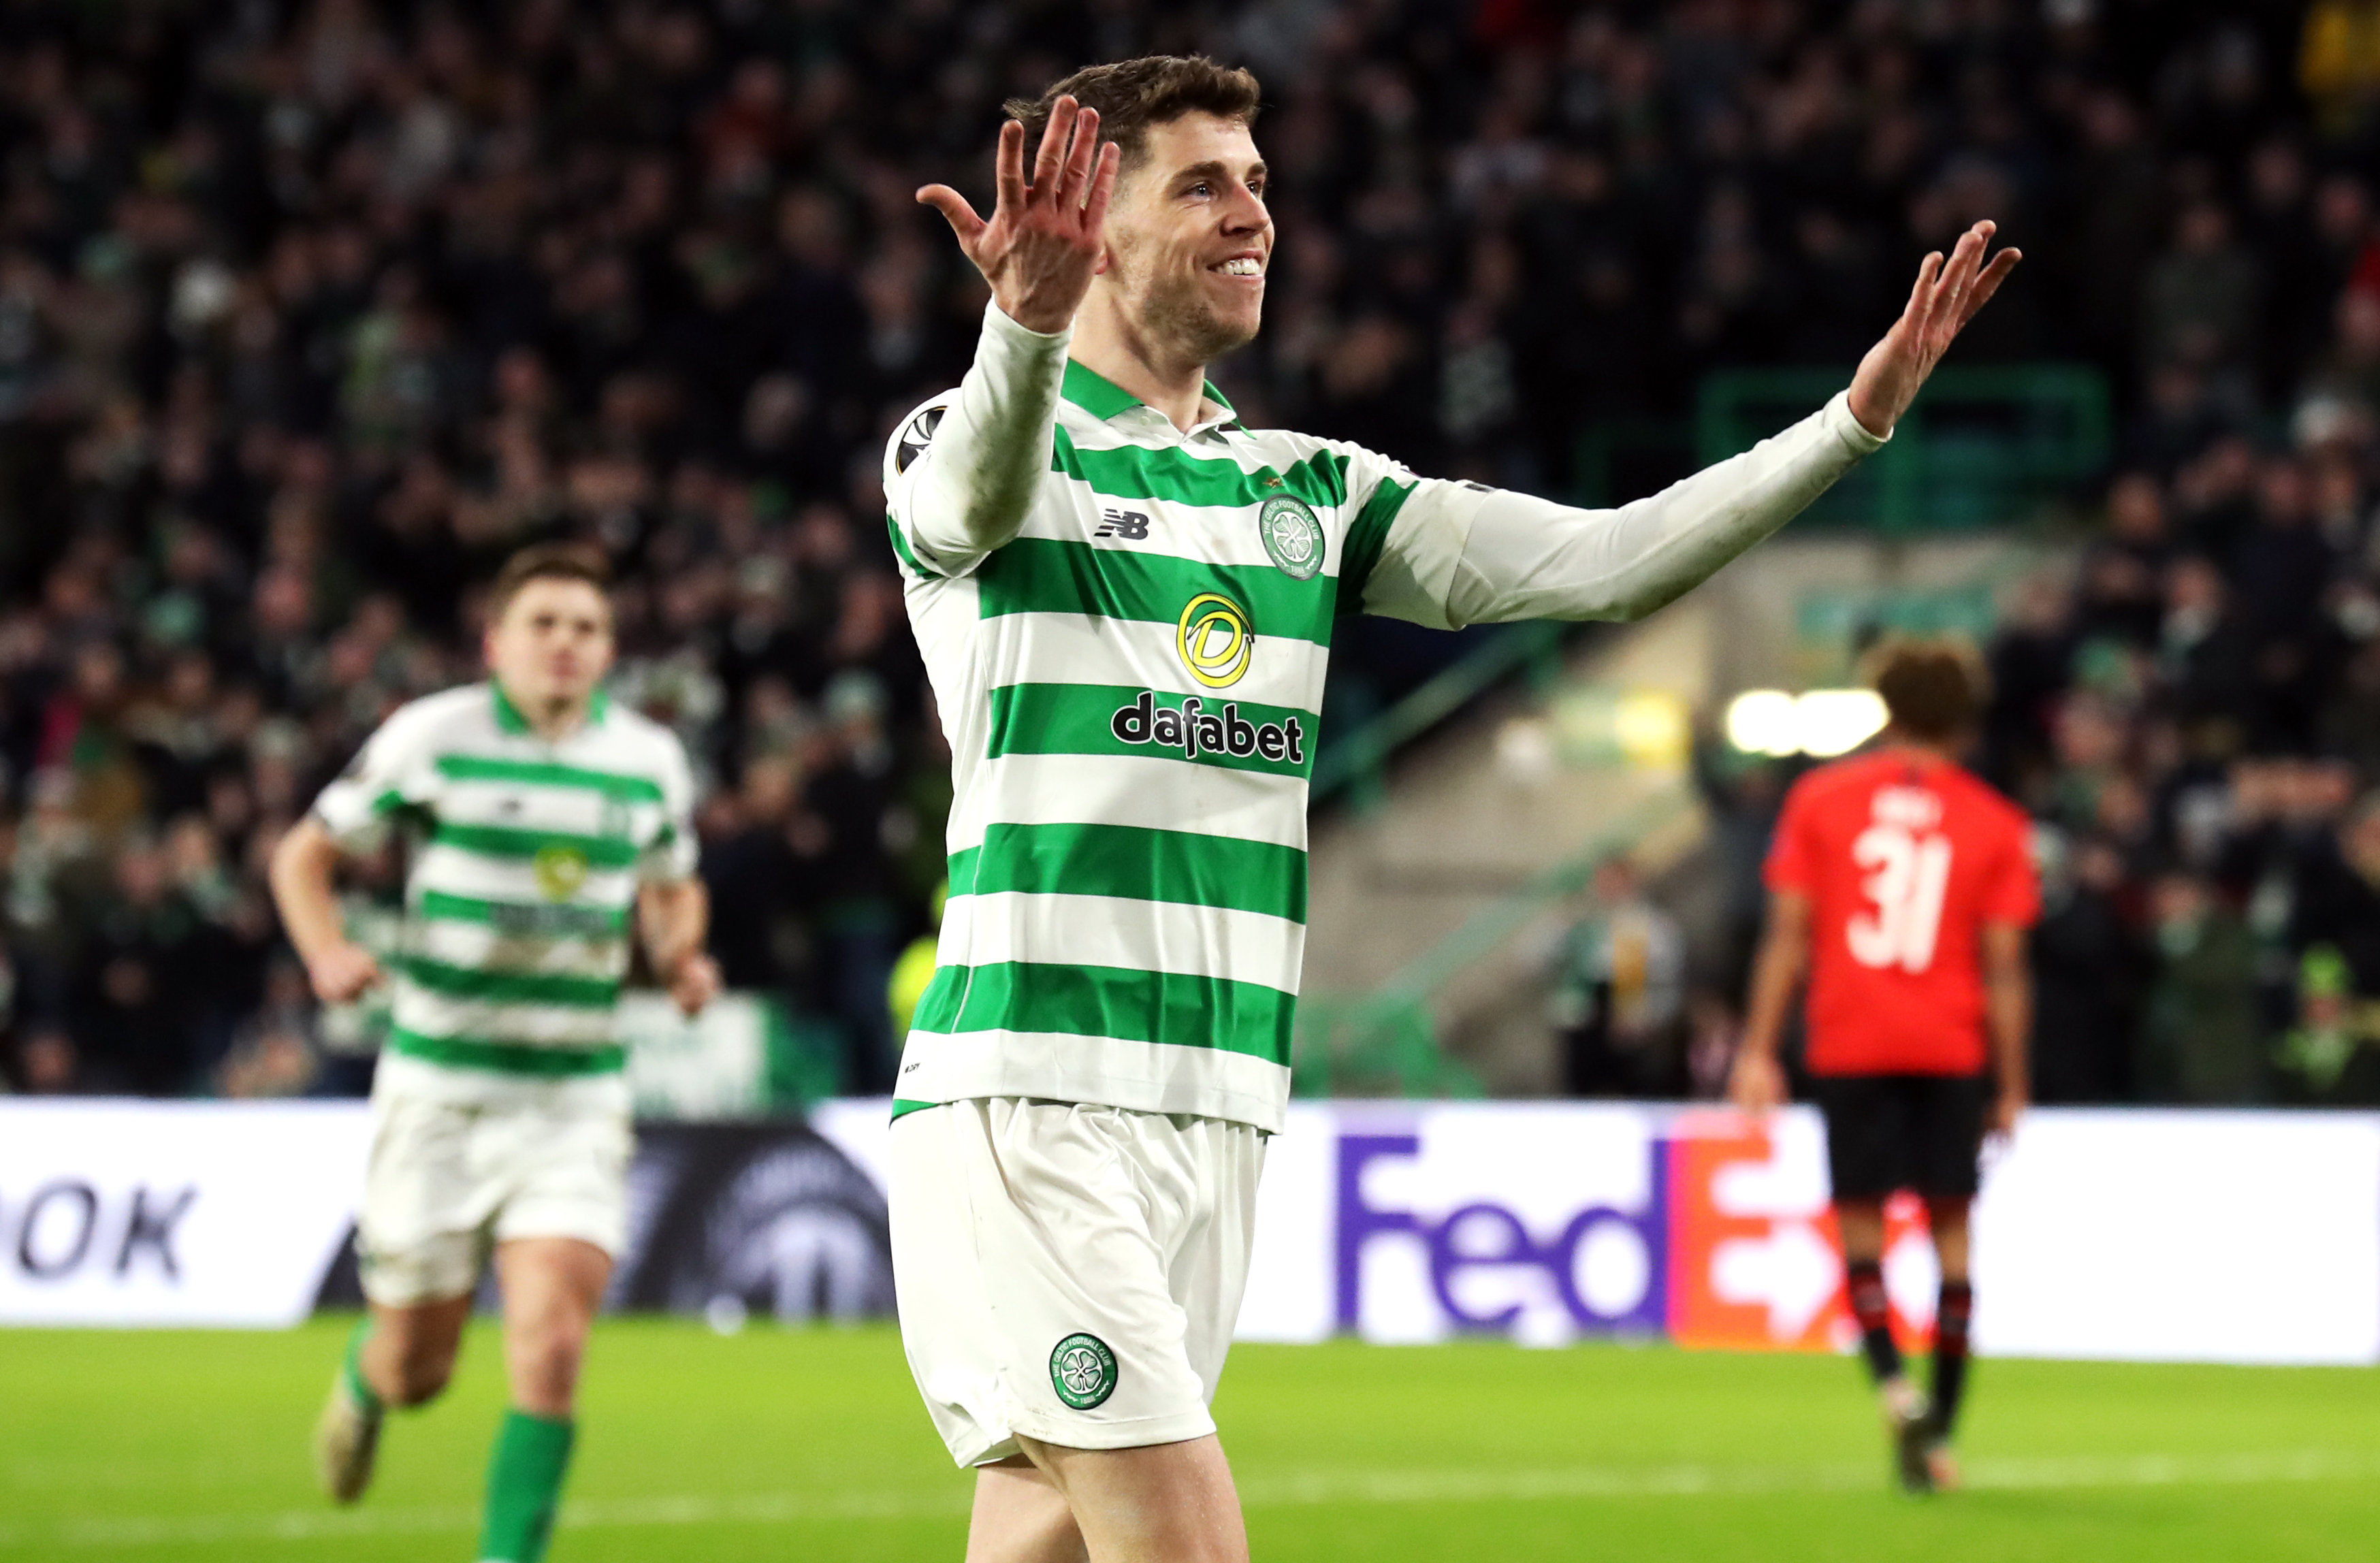 🏴🍀 Celtic midfielder Ryan Christie talks players who should win in this season's awards